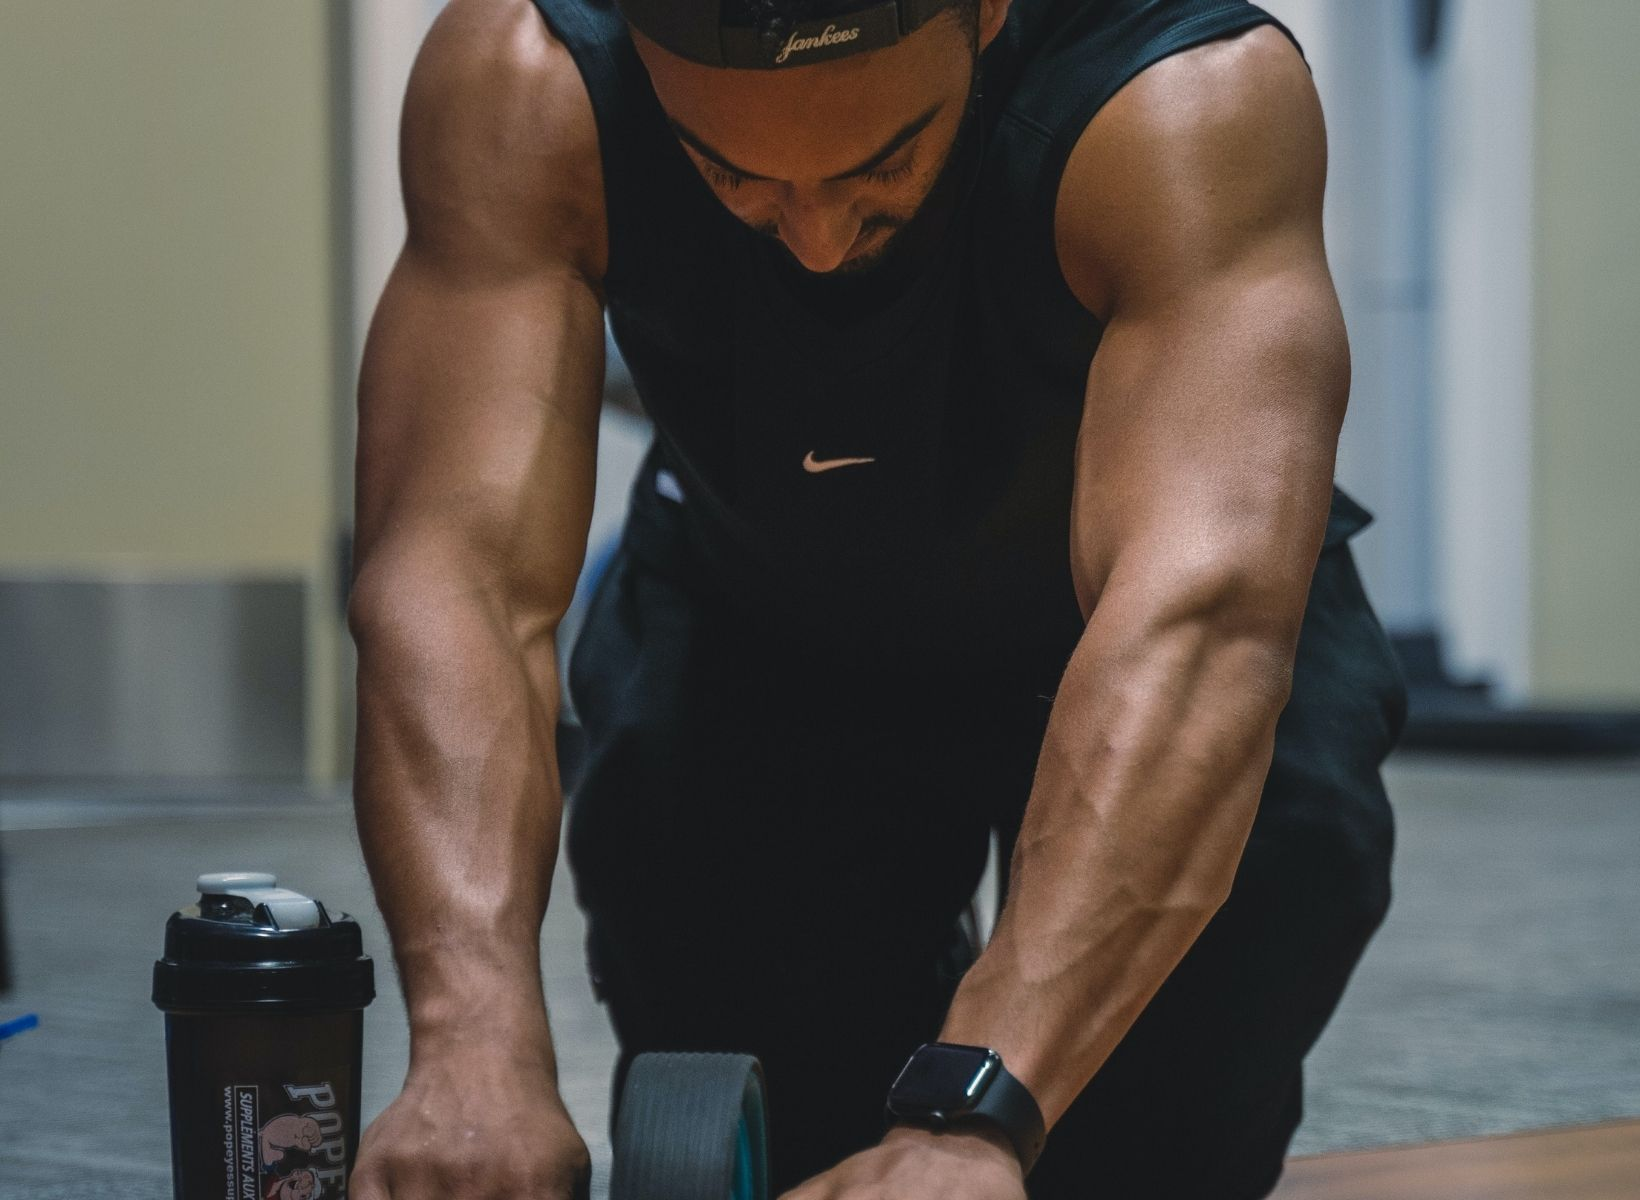 A man using an ab roller to work his core; next to him is a protein shake